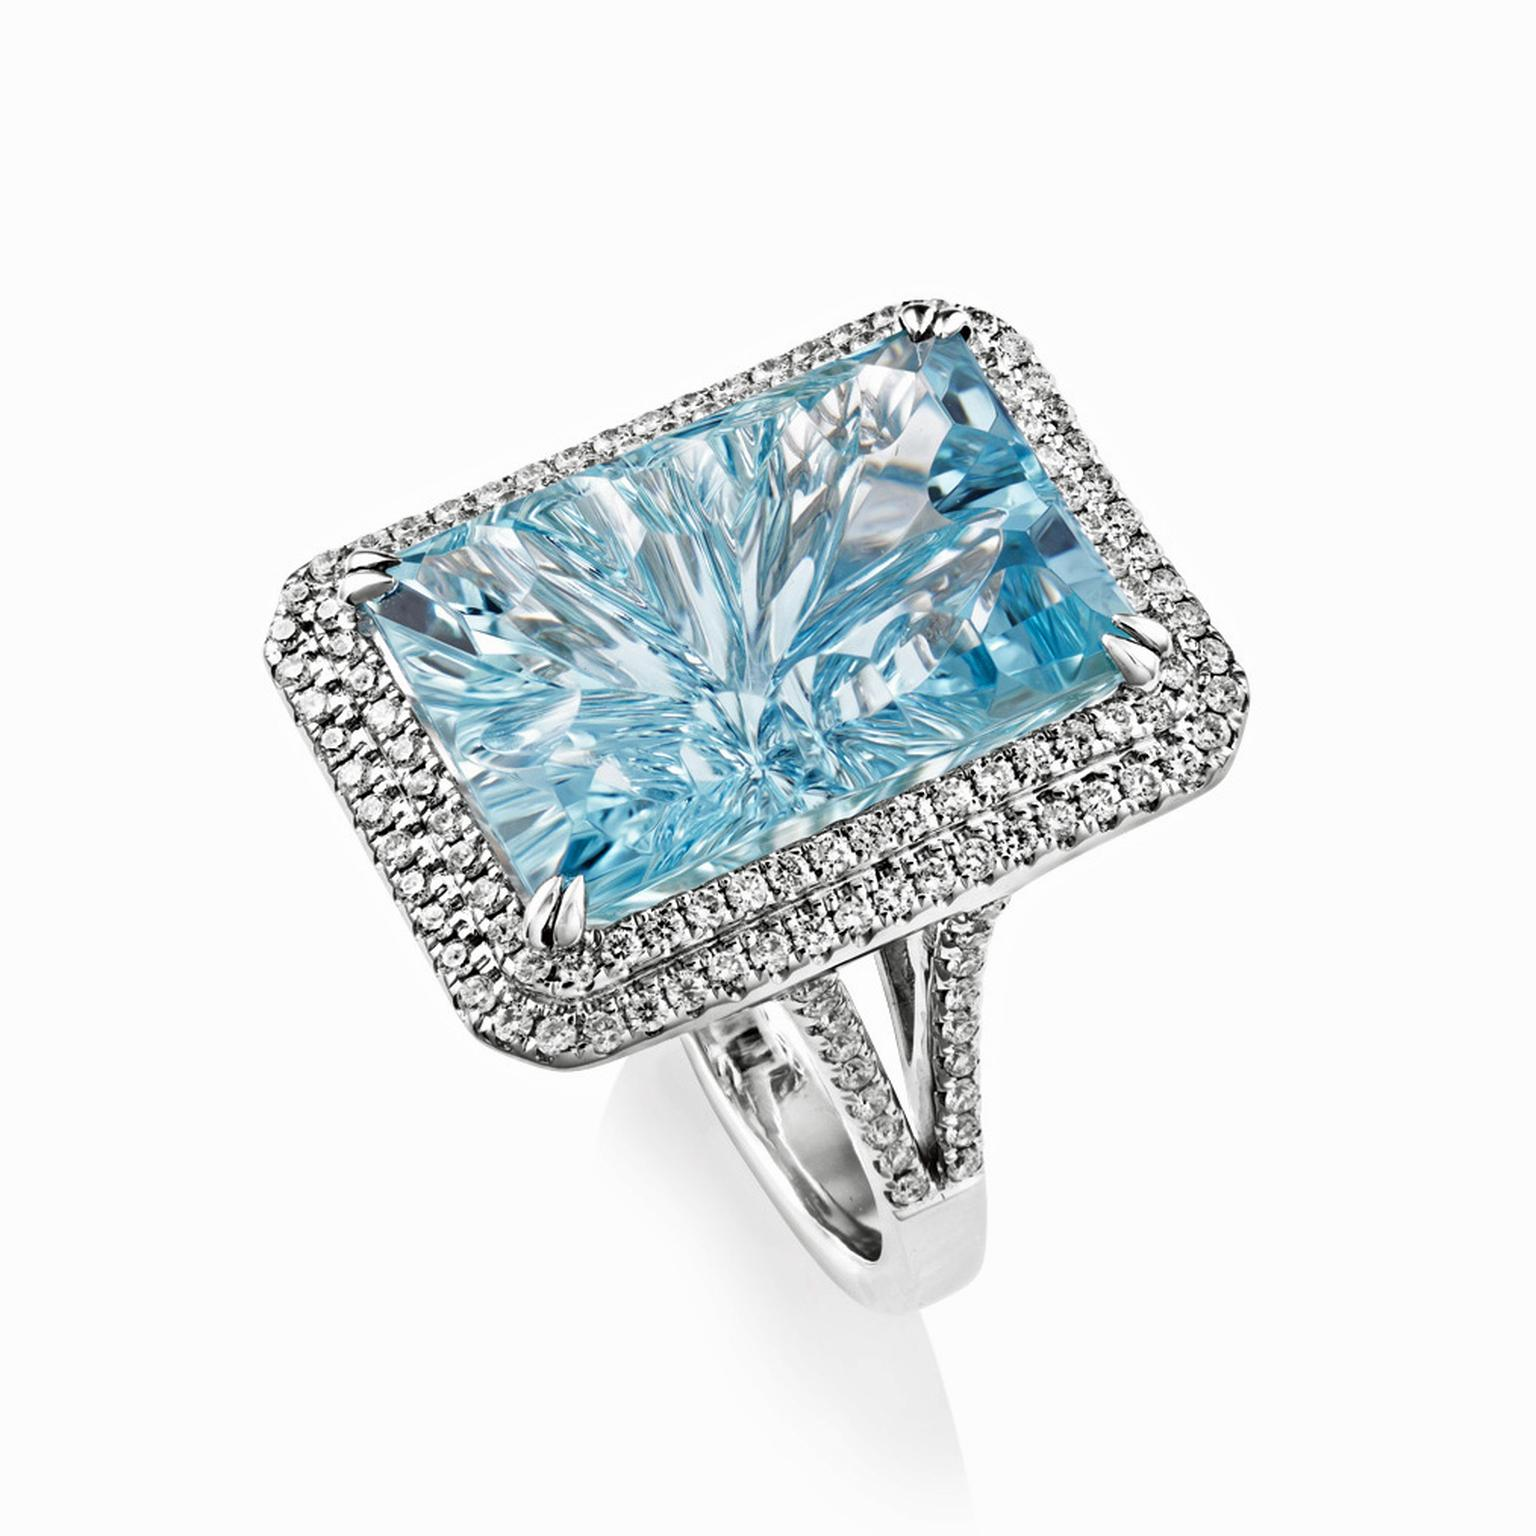 Sheldon Bloomfield white gold, aquamarine and diamond cocktail ring